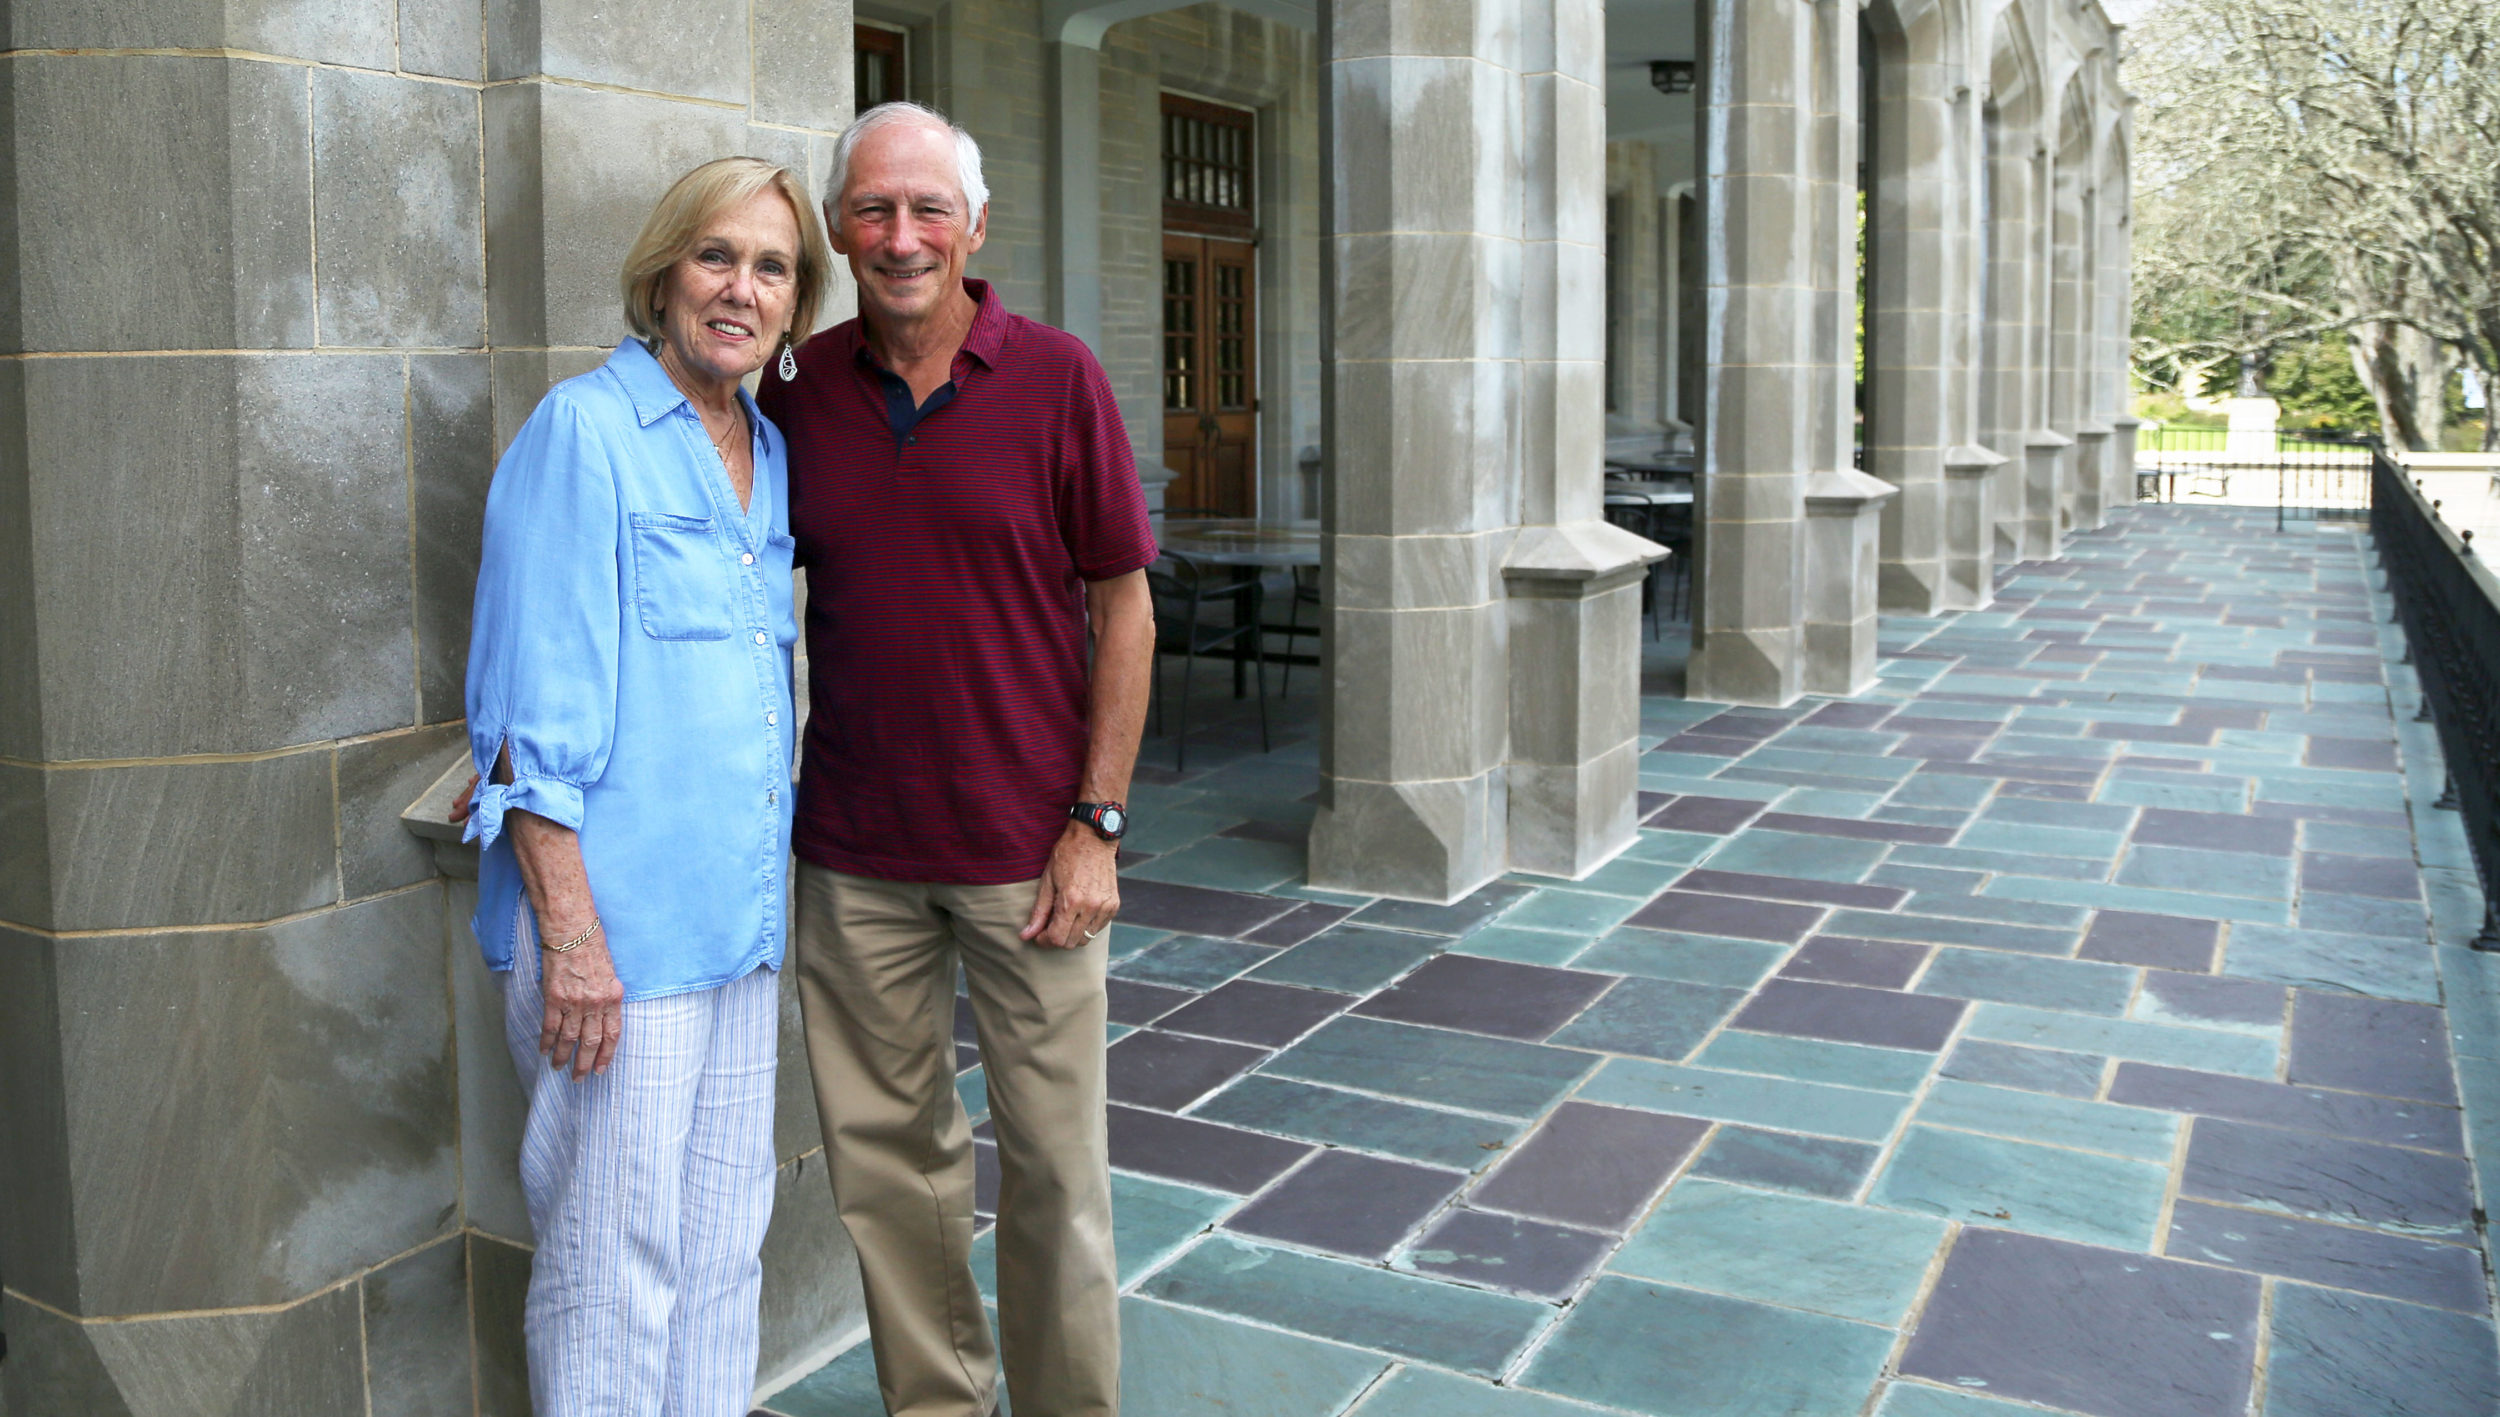 Paul Bouis '67, Ph.D., and his wife, Lois W. Ford-Bouis